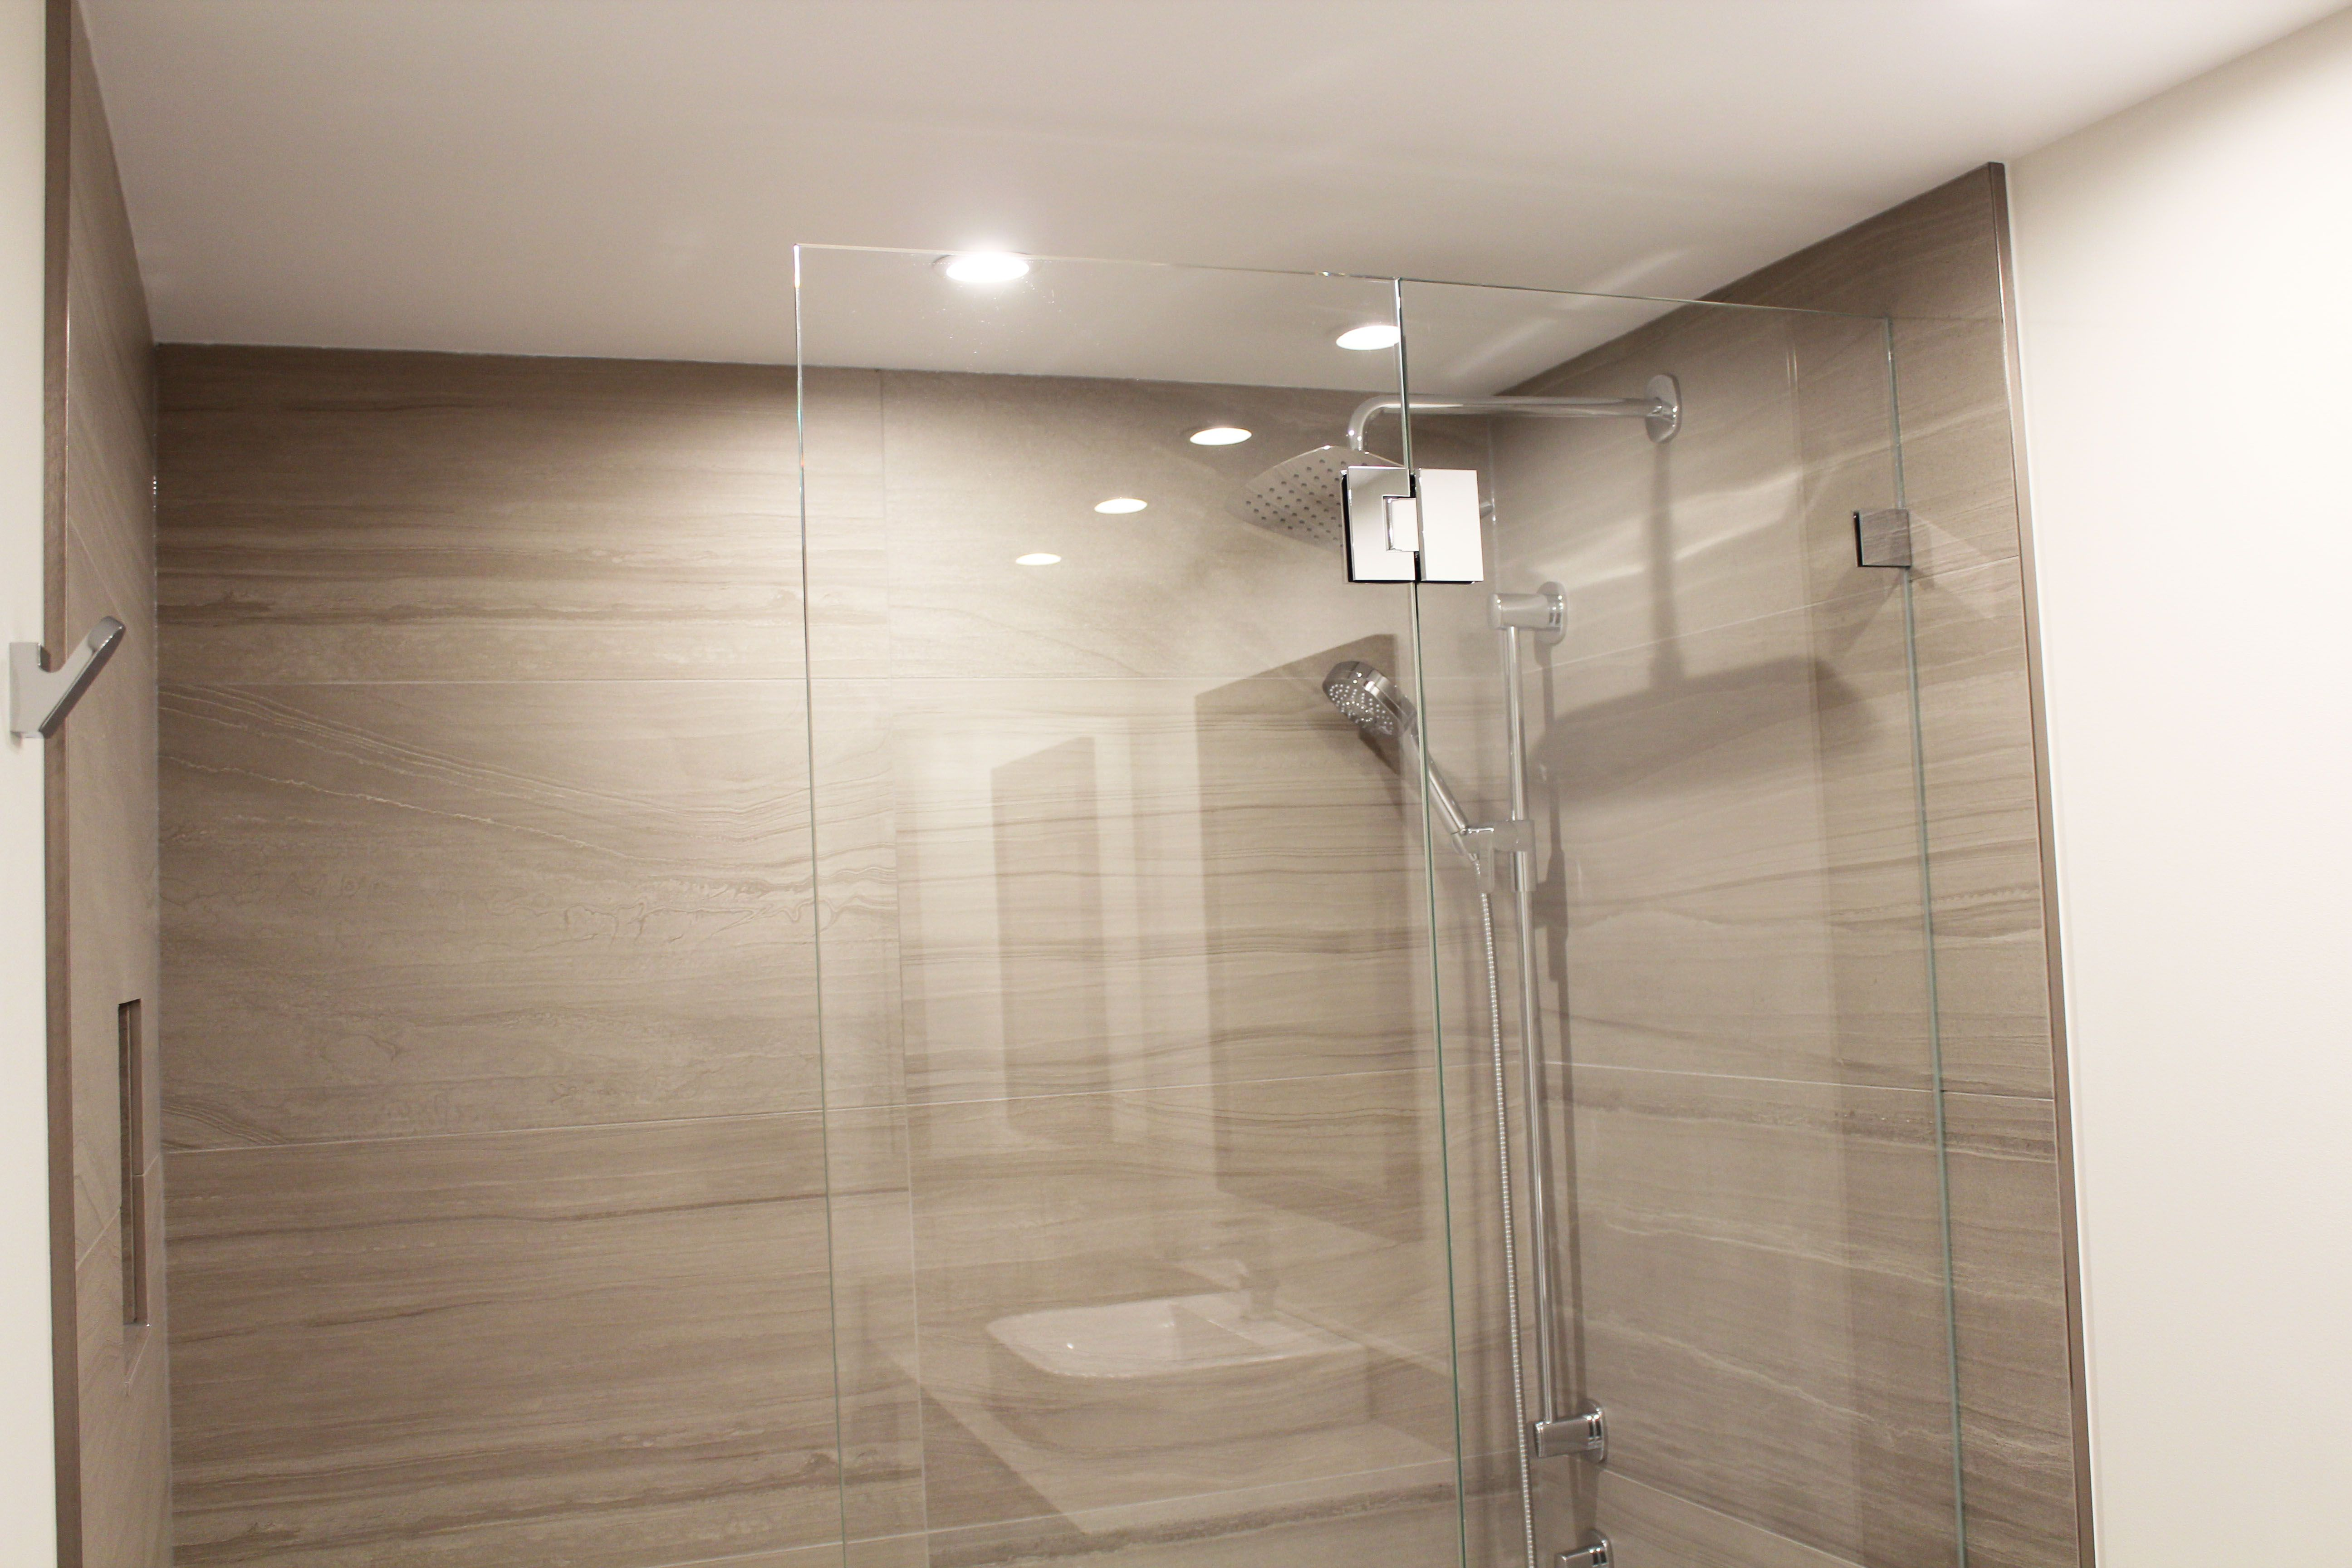 Pin On Bathroom Renovation Condo West 6th Ave Vancouver